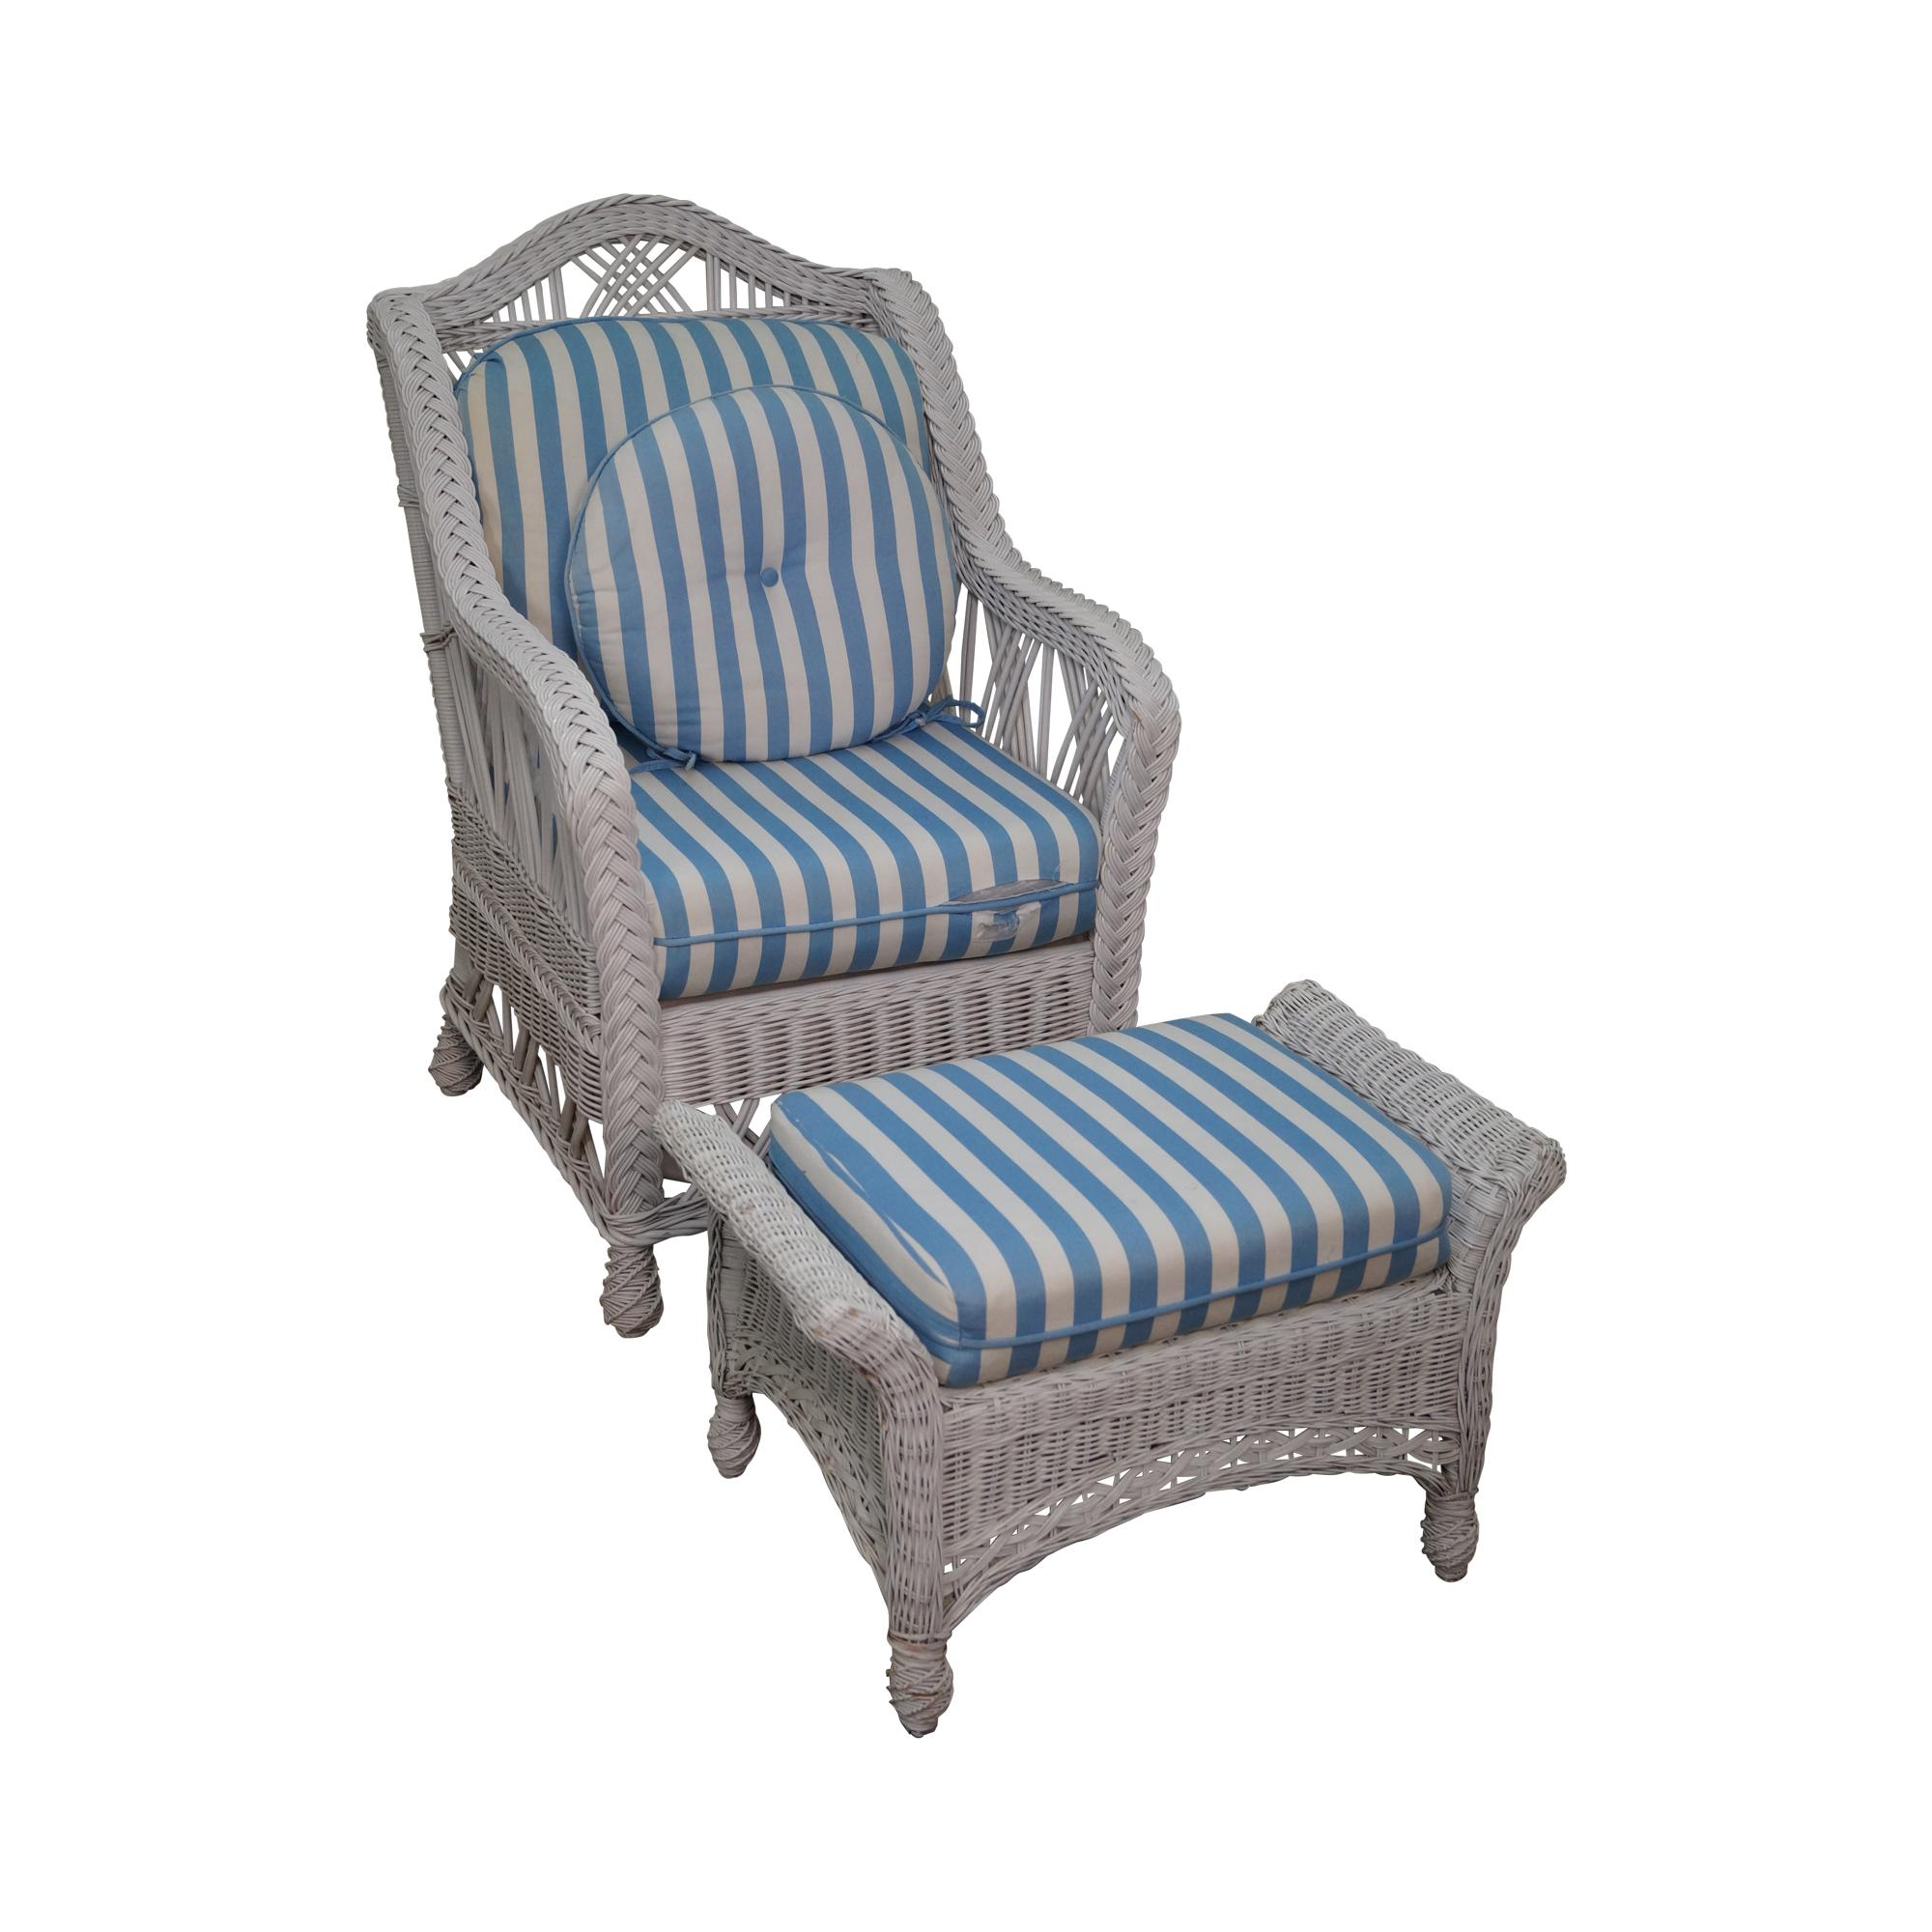 Etonnant Victorian Style White Wicker Lounge Chair With Ottoman